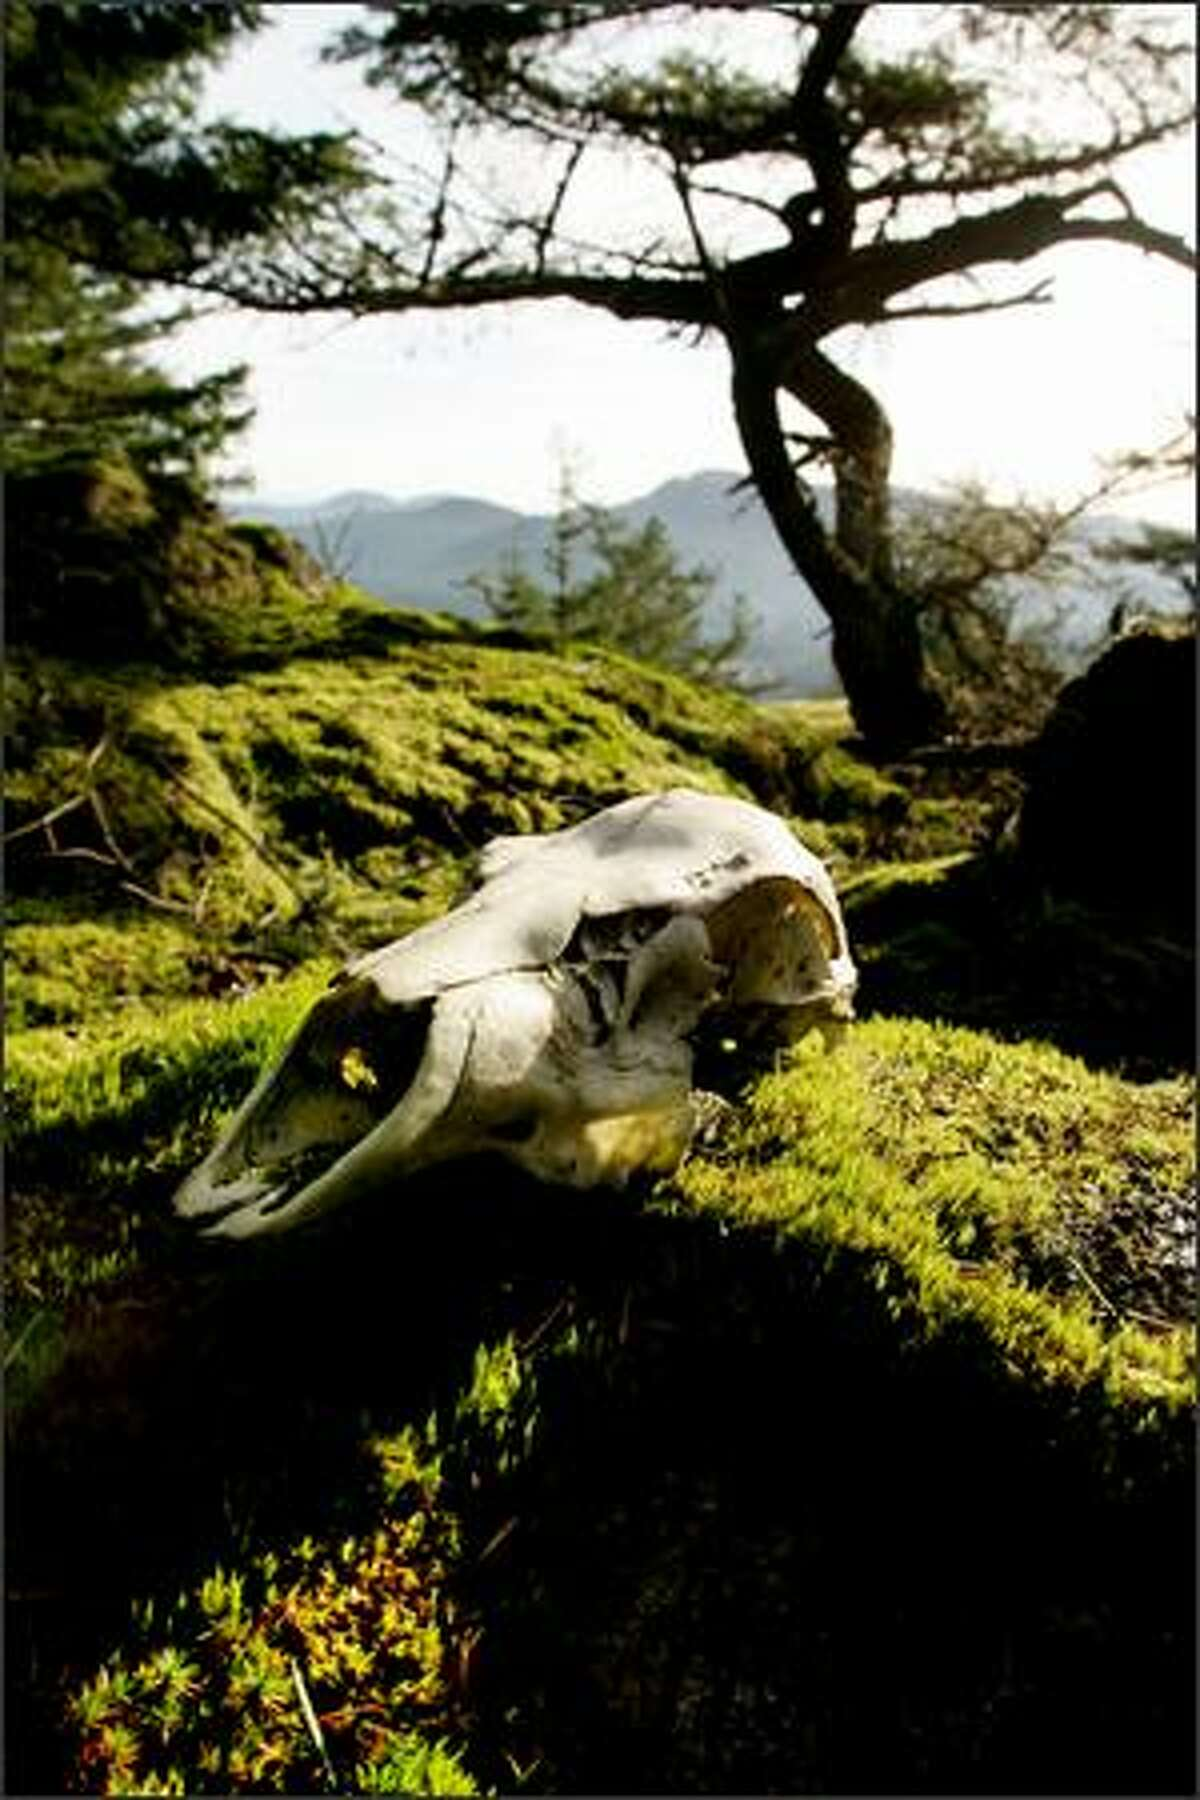 The skull of a young deer rests on a moss covered rock at one of the scenic overlooks from the Turtelback Mountain Trail on Orcas Island.